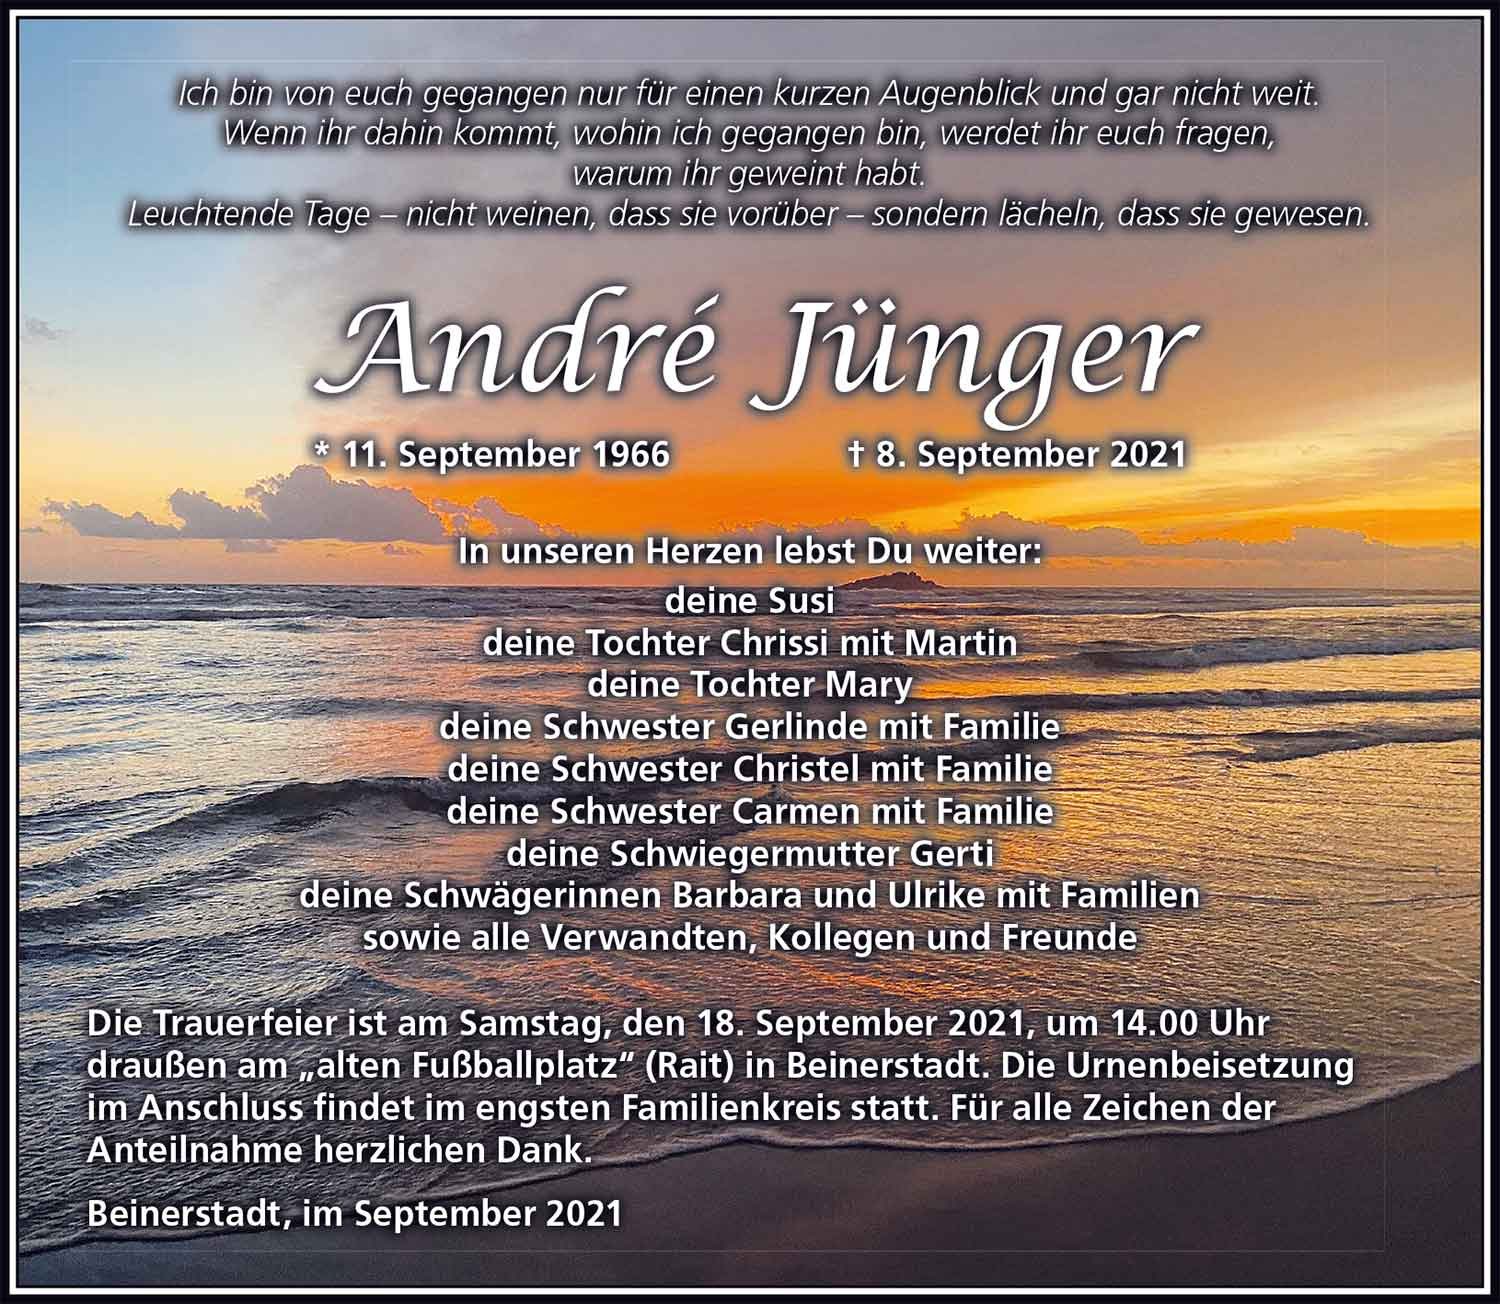 Trauer_Andre_Juenger_37_21